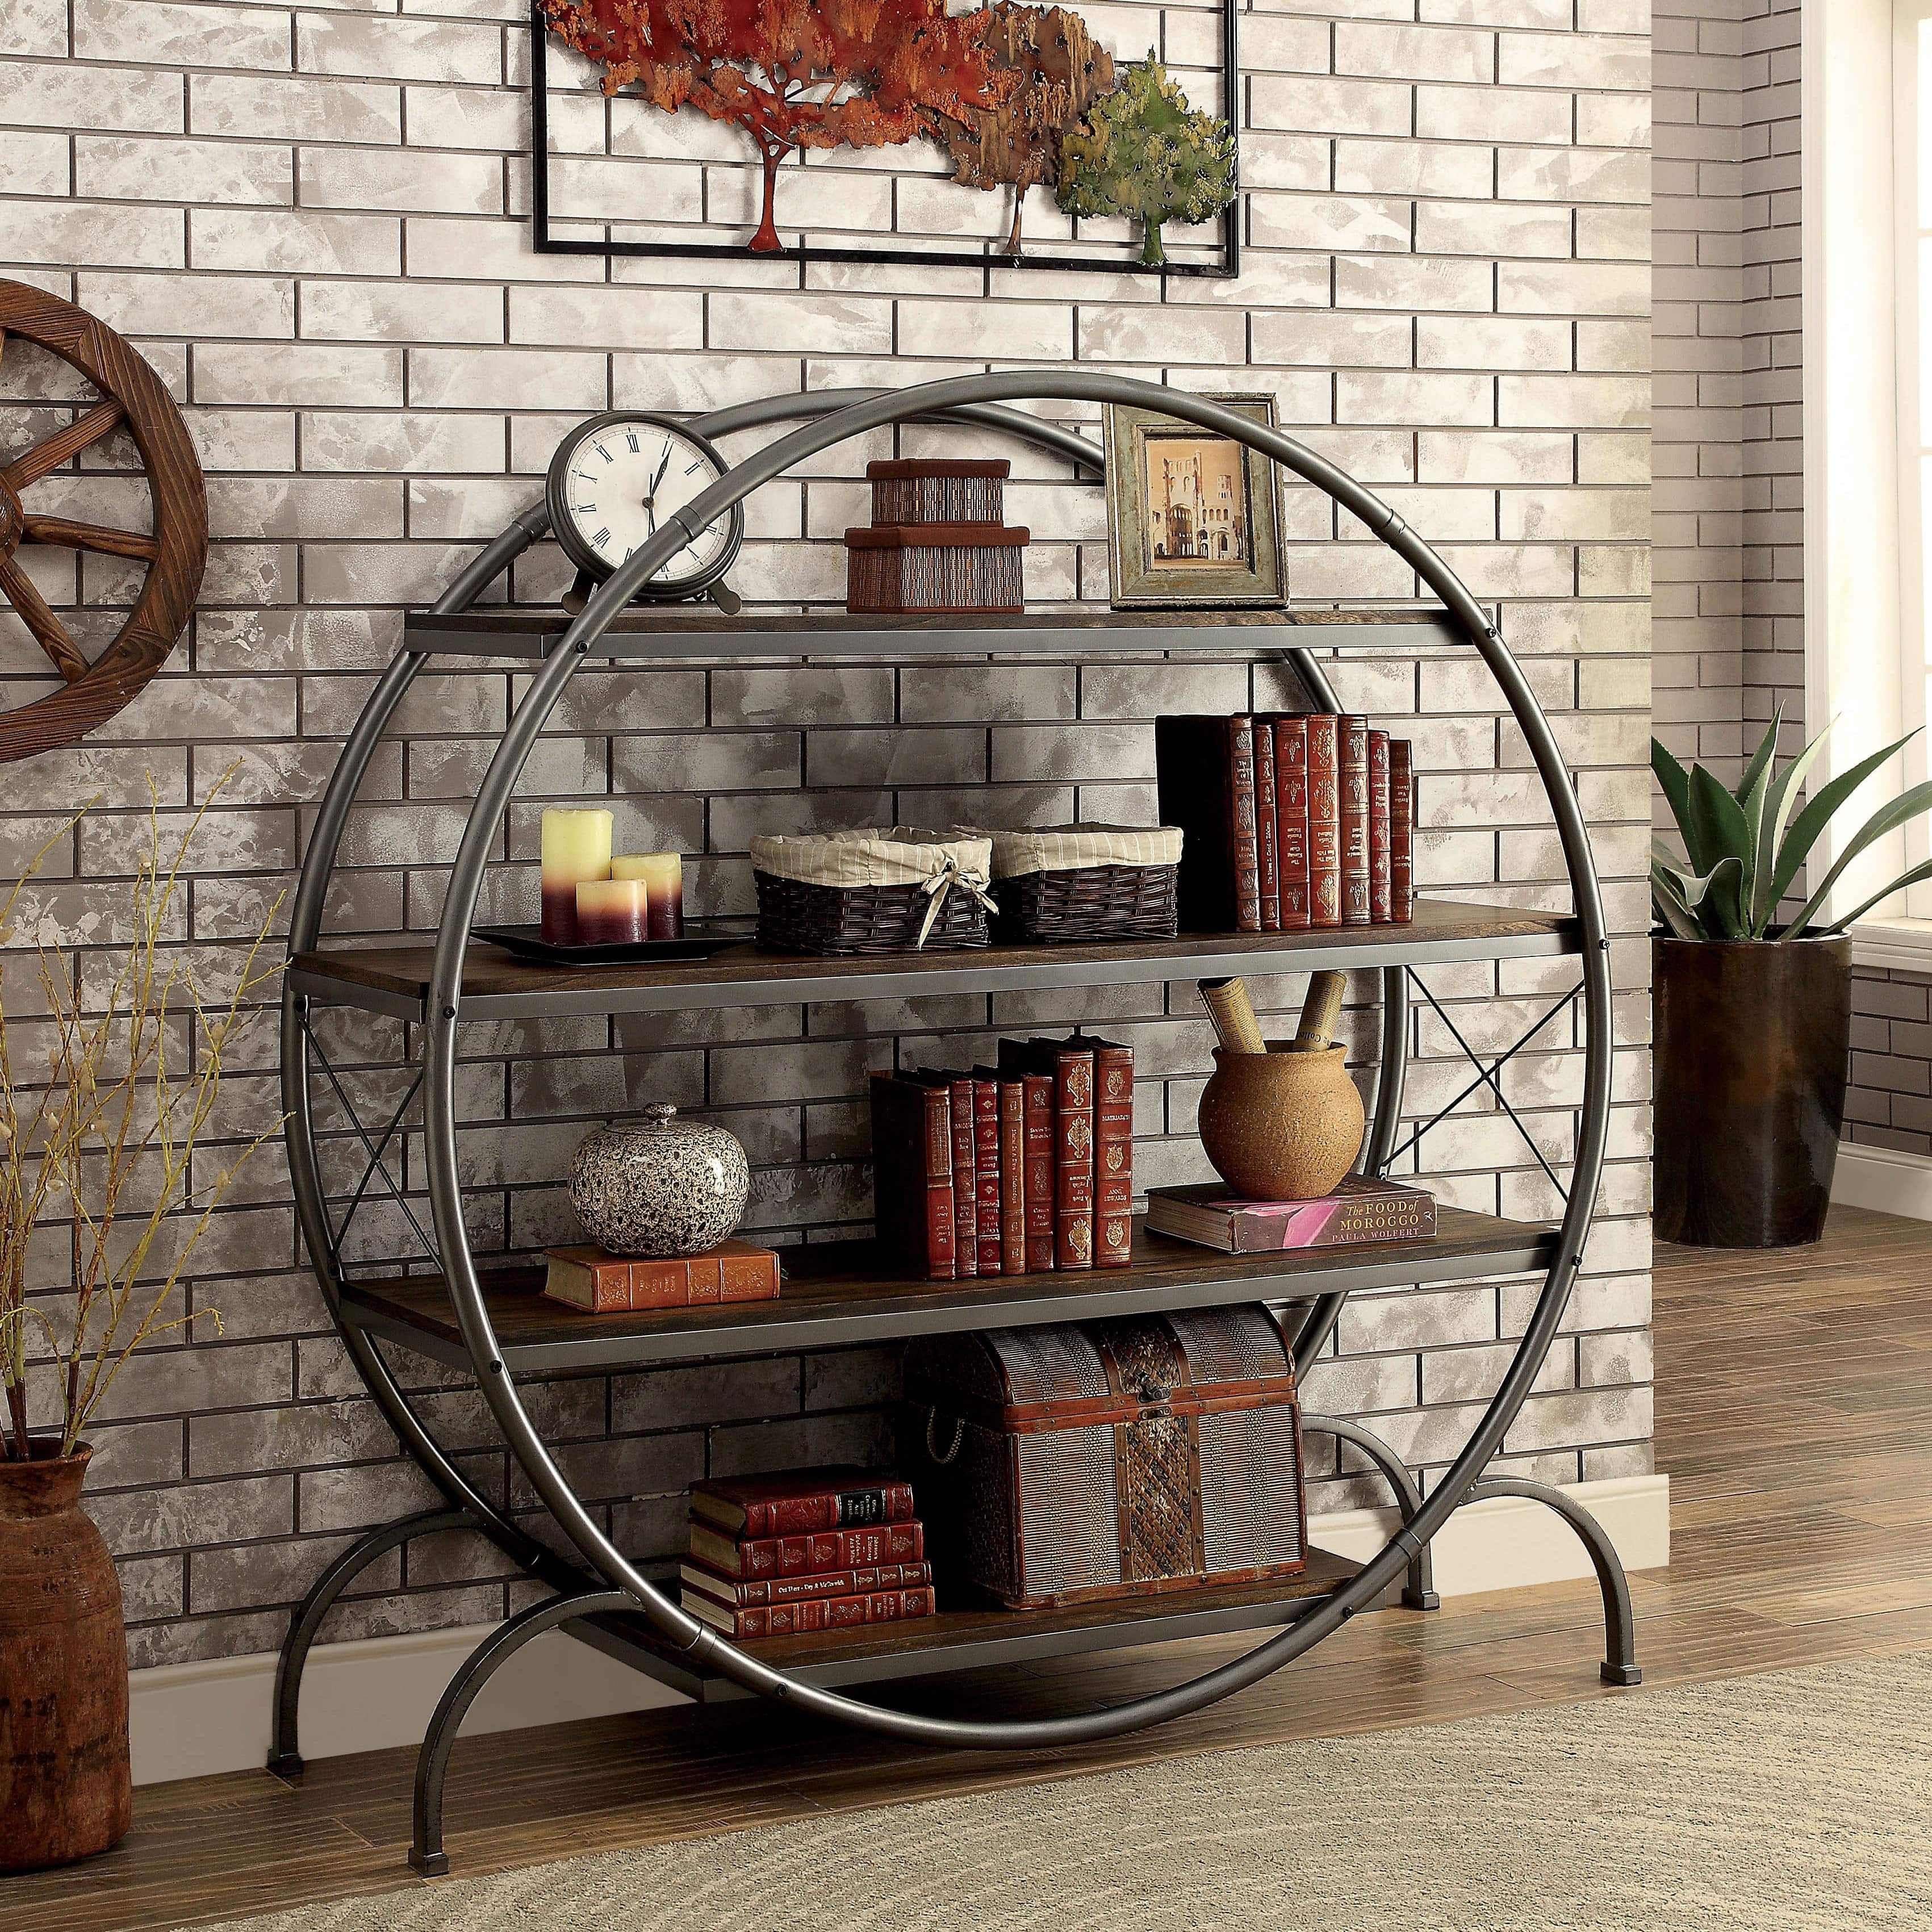 with book shelf luxury interior room library can of perfect design make bookshelf elegant modern rustic the it so circular circle beautiful seems living and nice